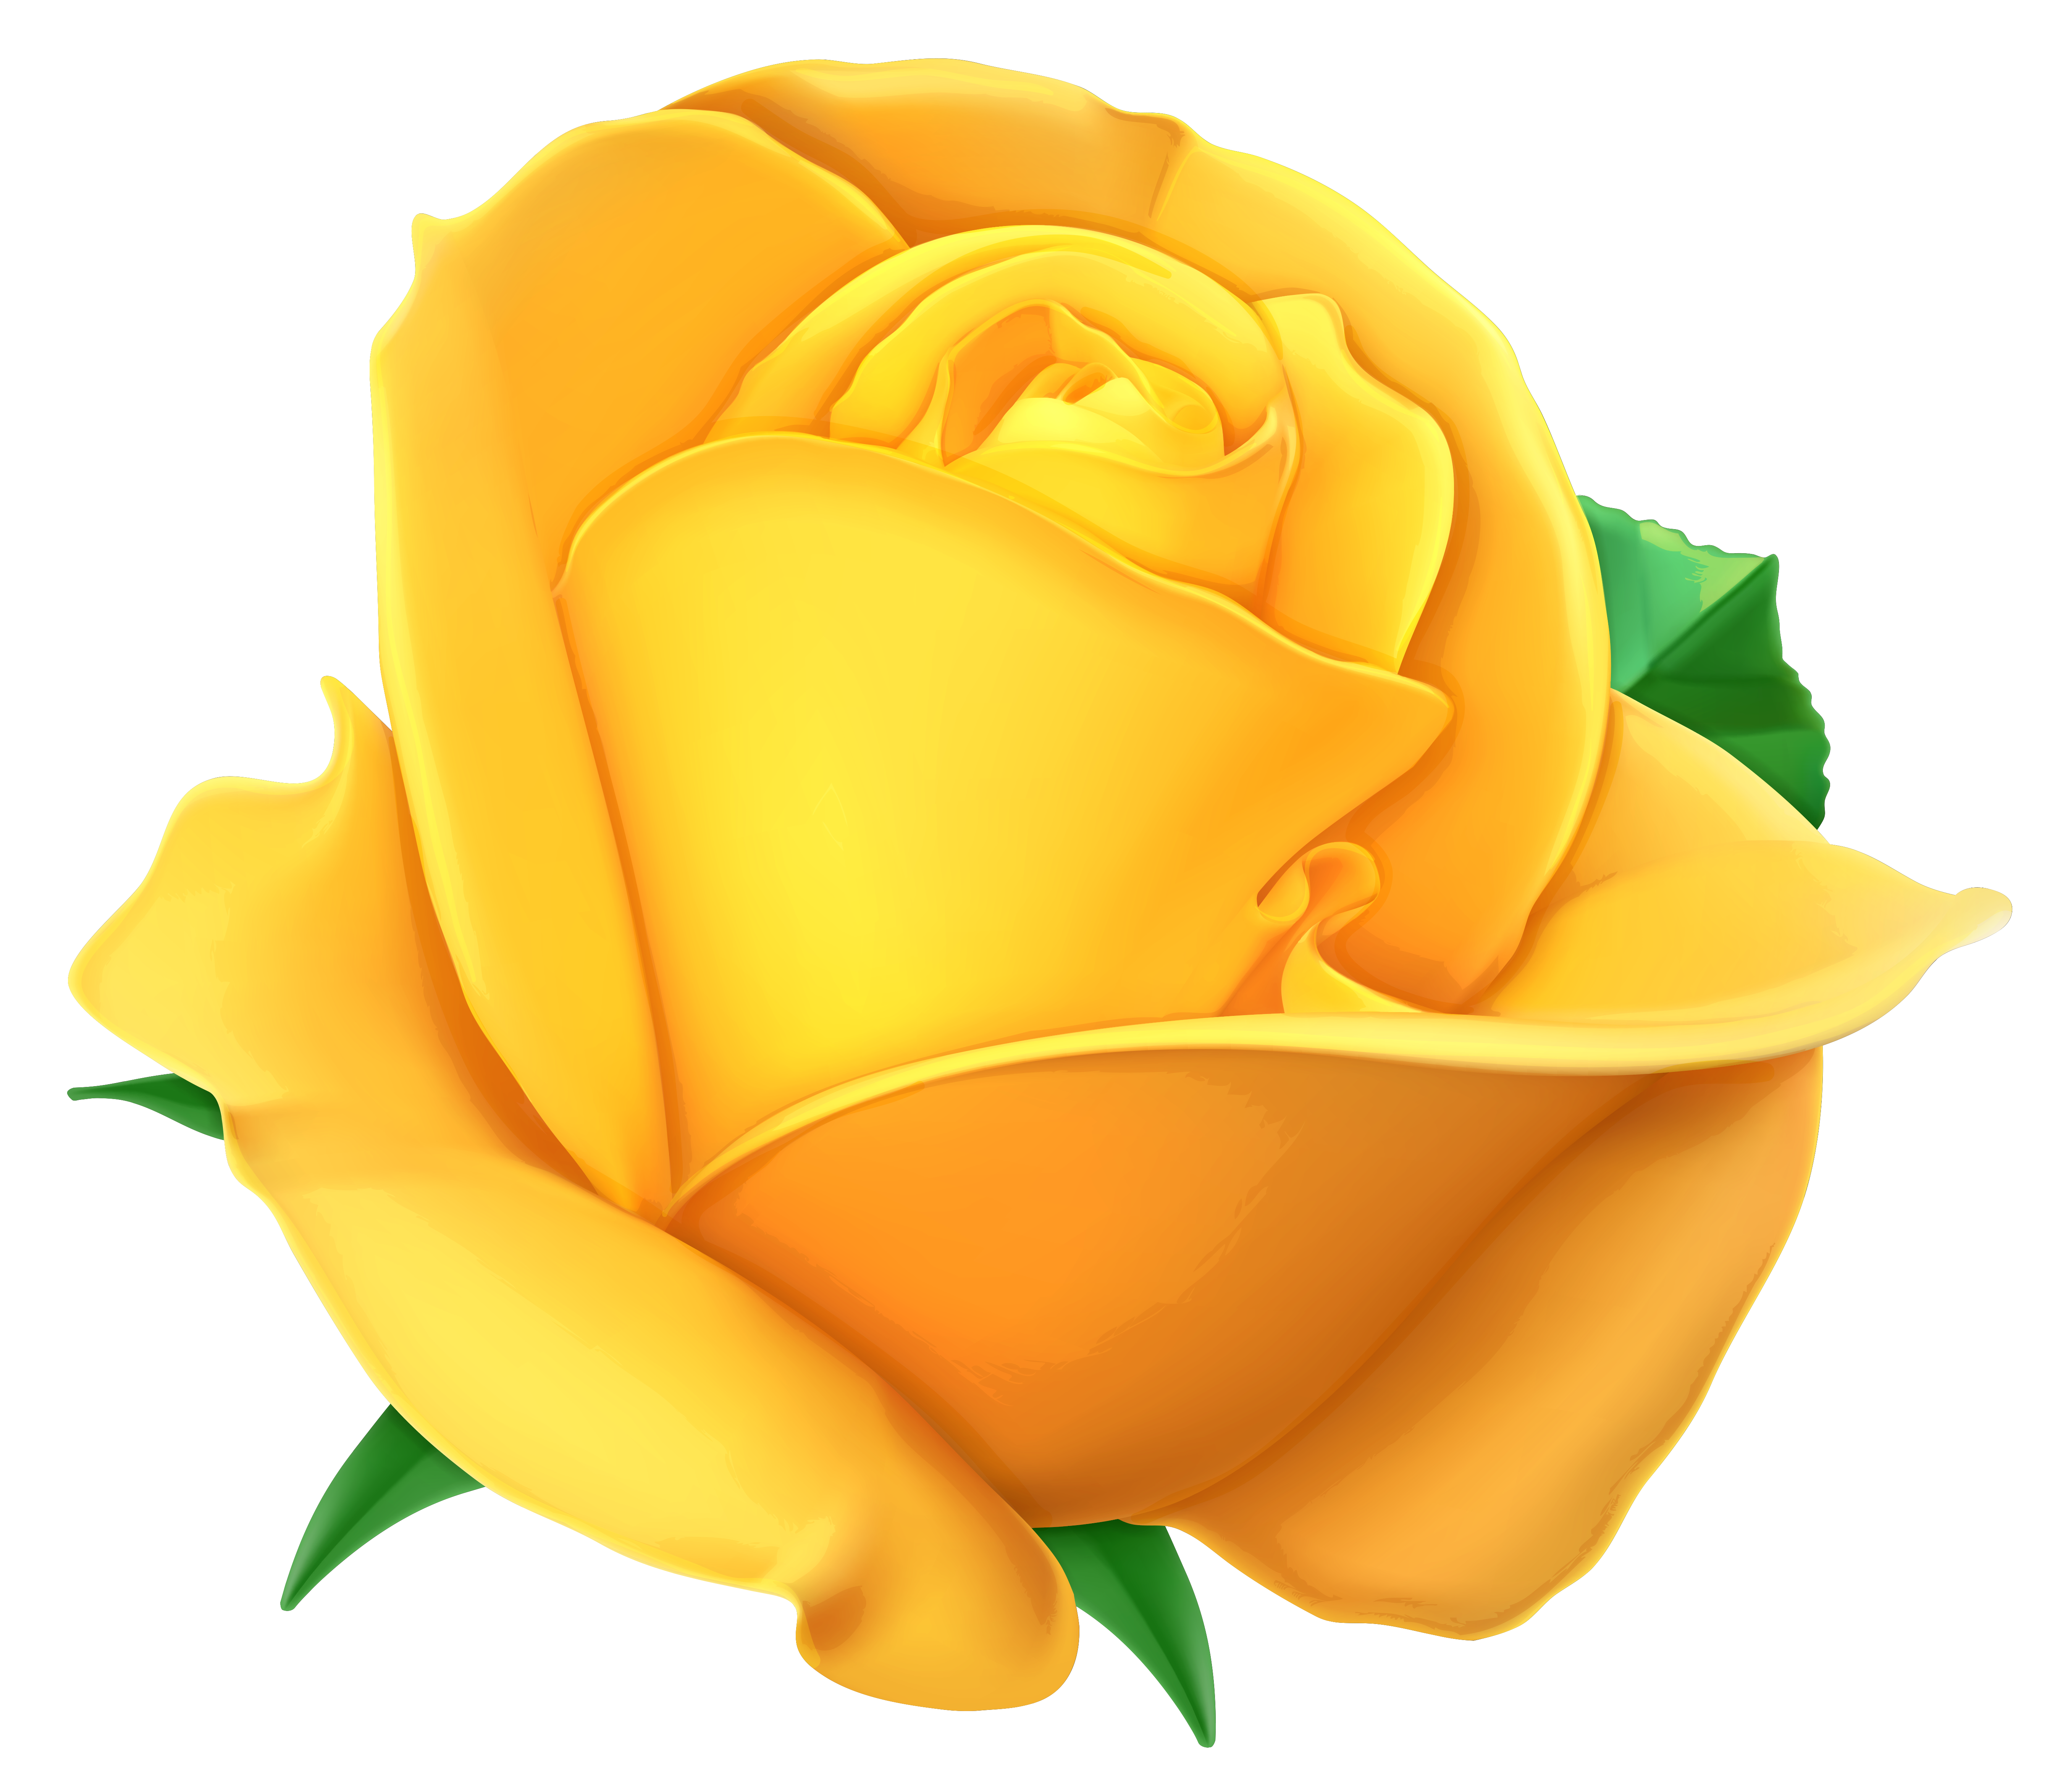 Yellow Flower clipart yellow rose Rose Download clipart Yellow drawings